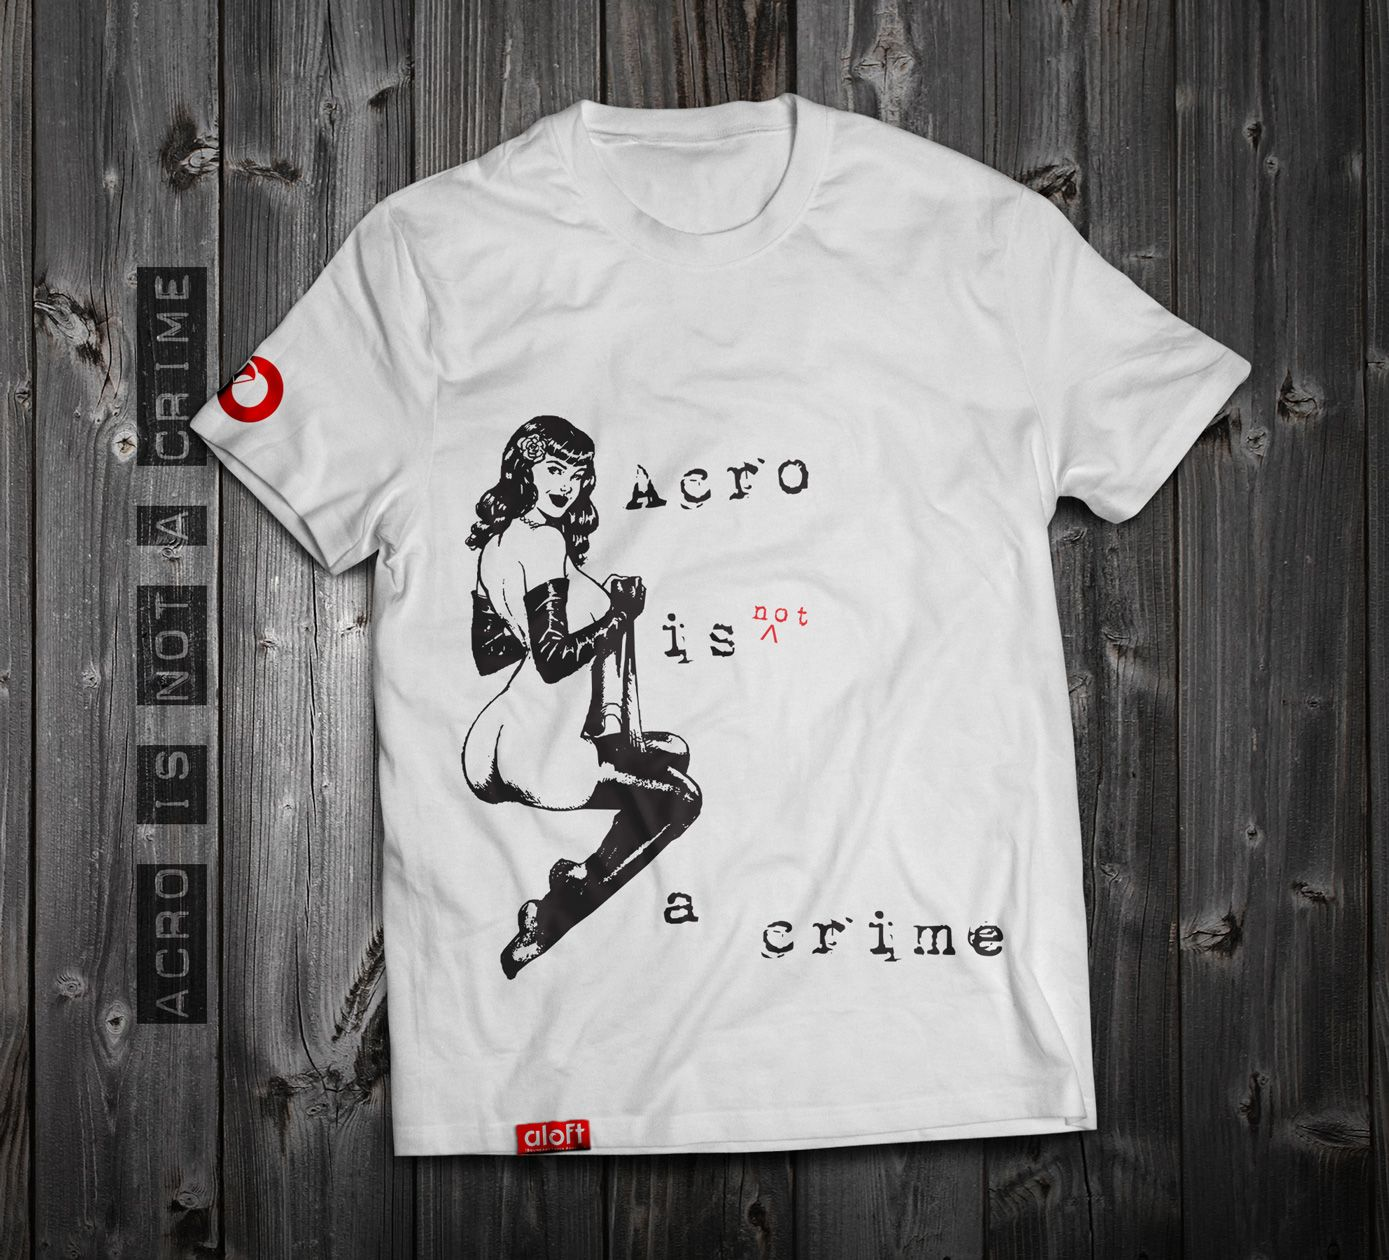 "https://www.aloft.clothing "" acro is not a crime"" men's t-shirt, white cotton, silk screen. paragliding brand, casual line Like our page: https://www.facebook.com/AloftBoundaryLayerApparel"